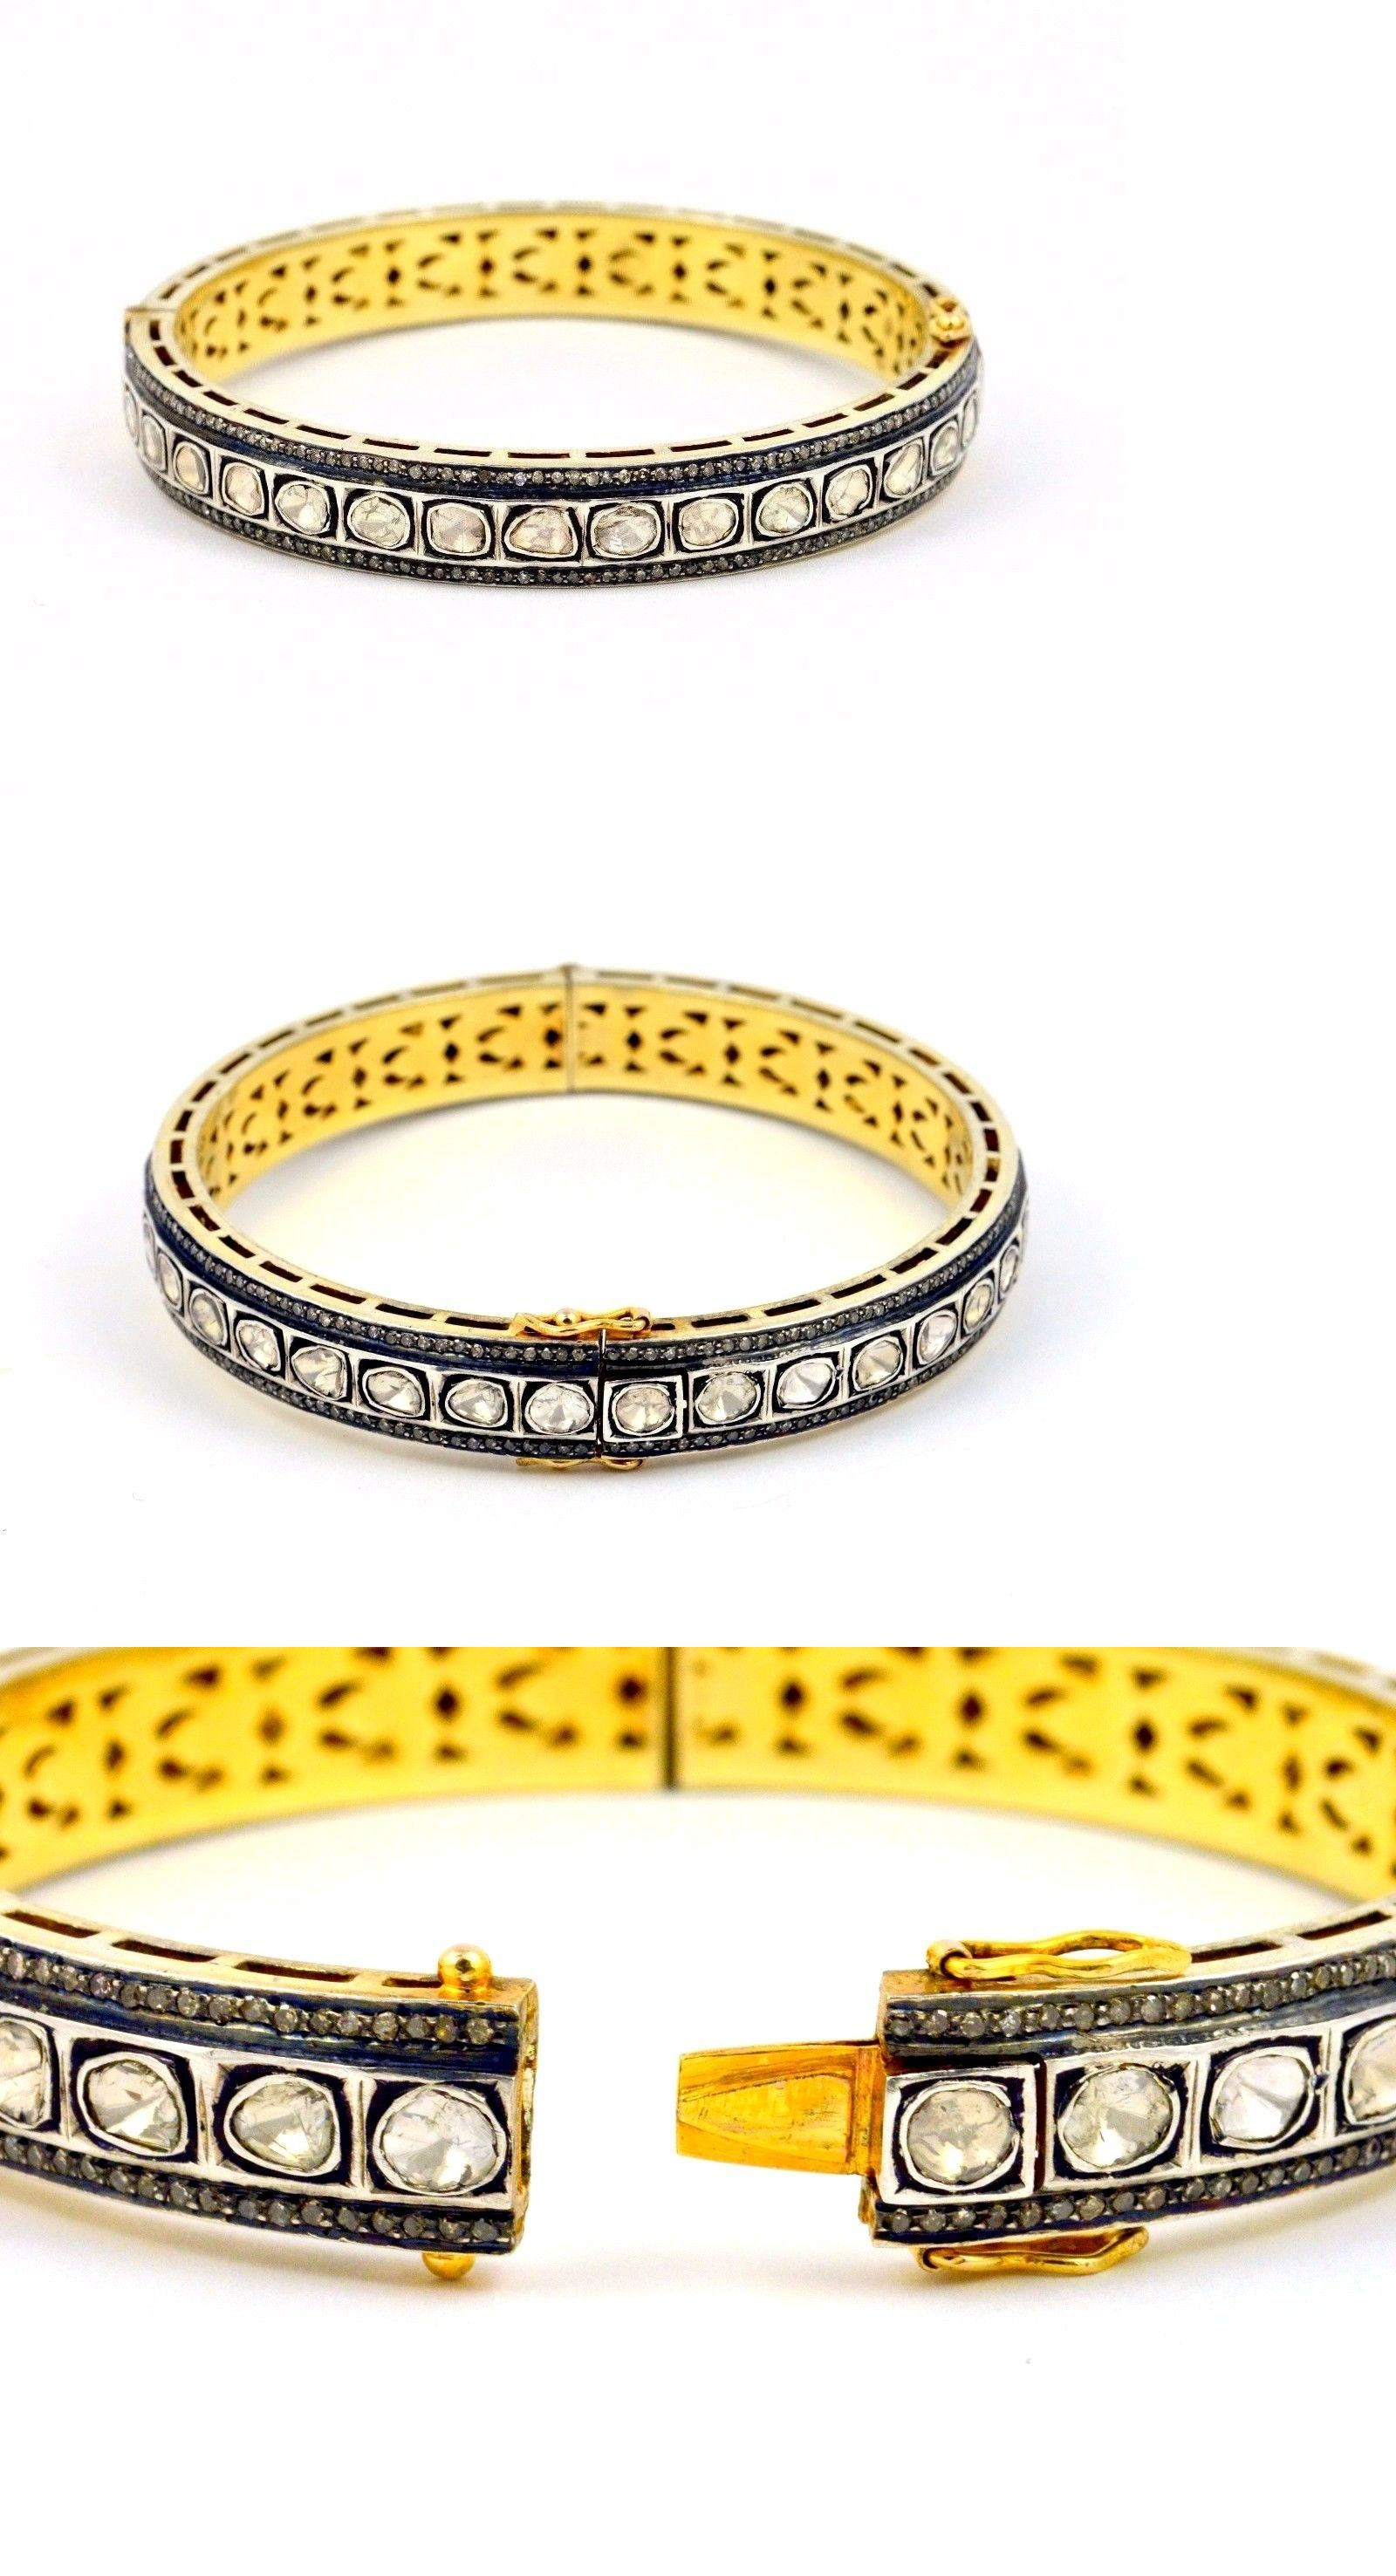 images plated gold to charm page return product previous with zoom small bracelets beads zirconia filled mama bangles sterling and cubic bangle bracelet silver